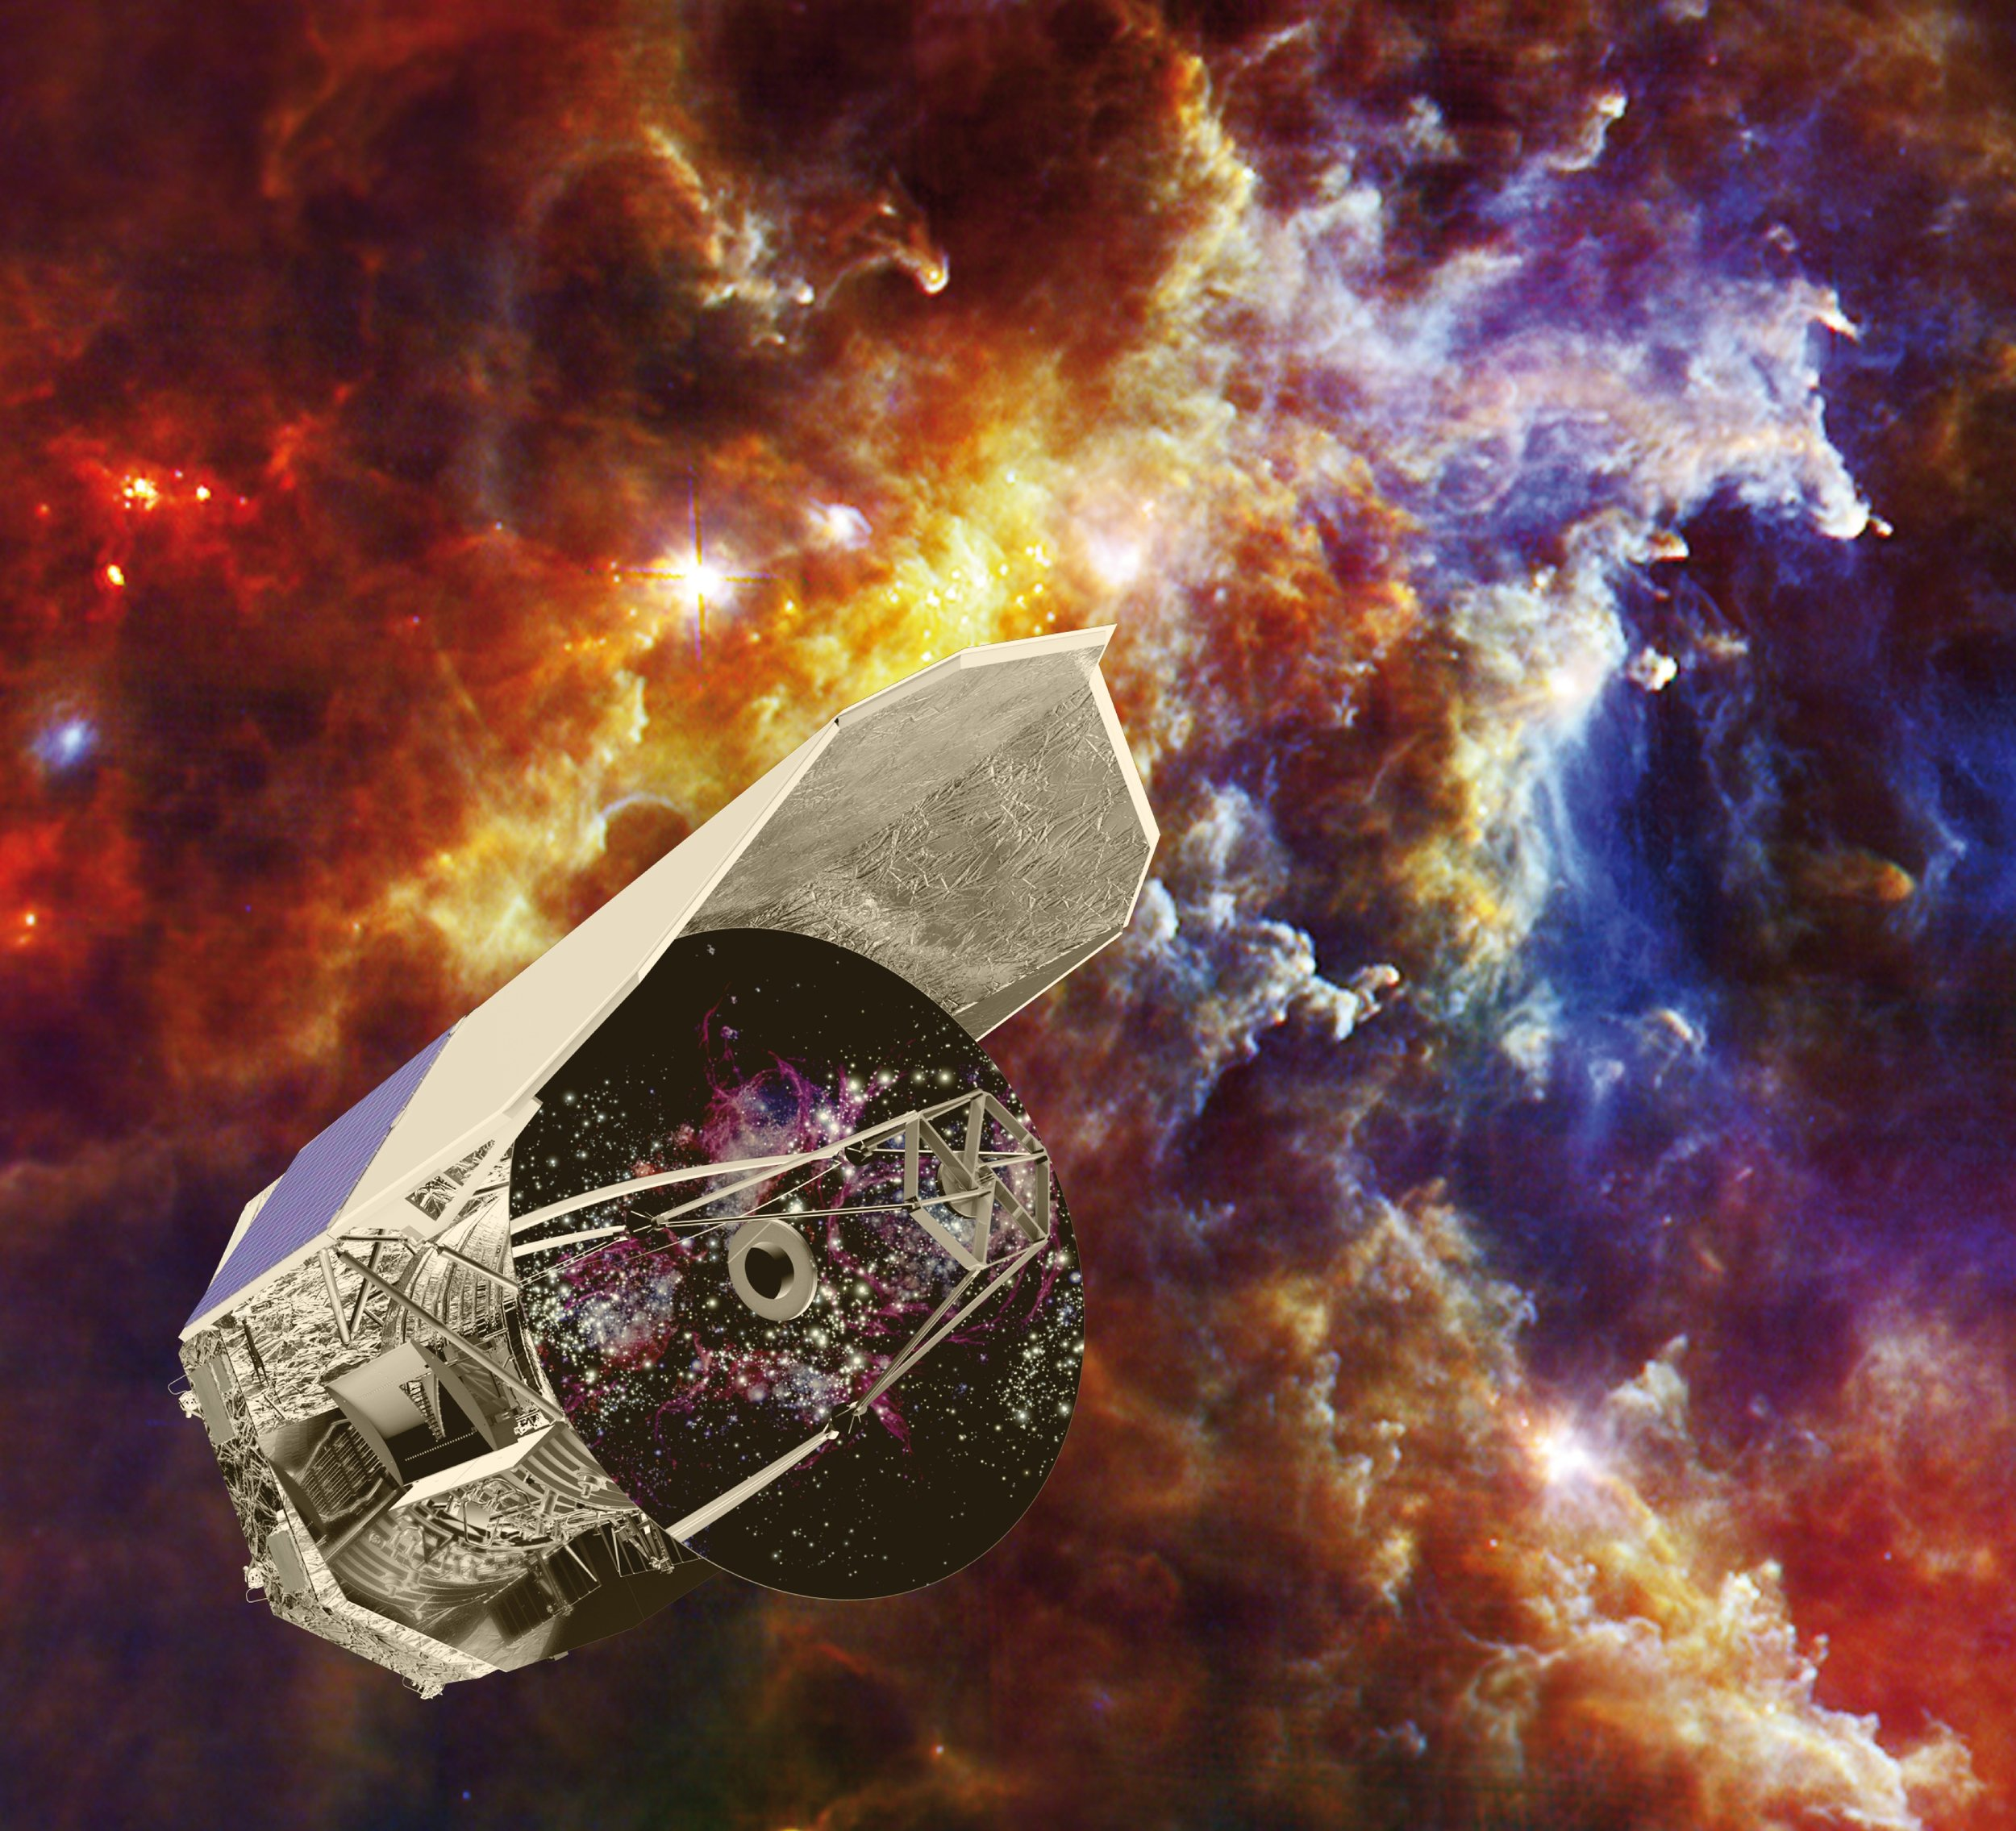 Dr Roberta Paladini talks about the space-based Herschel Space Observatory, which was the largest infrared telescope ever launched. It looked at the sky in the far infrared, and discovered an abundance of water in star-forming regions.